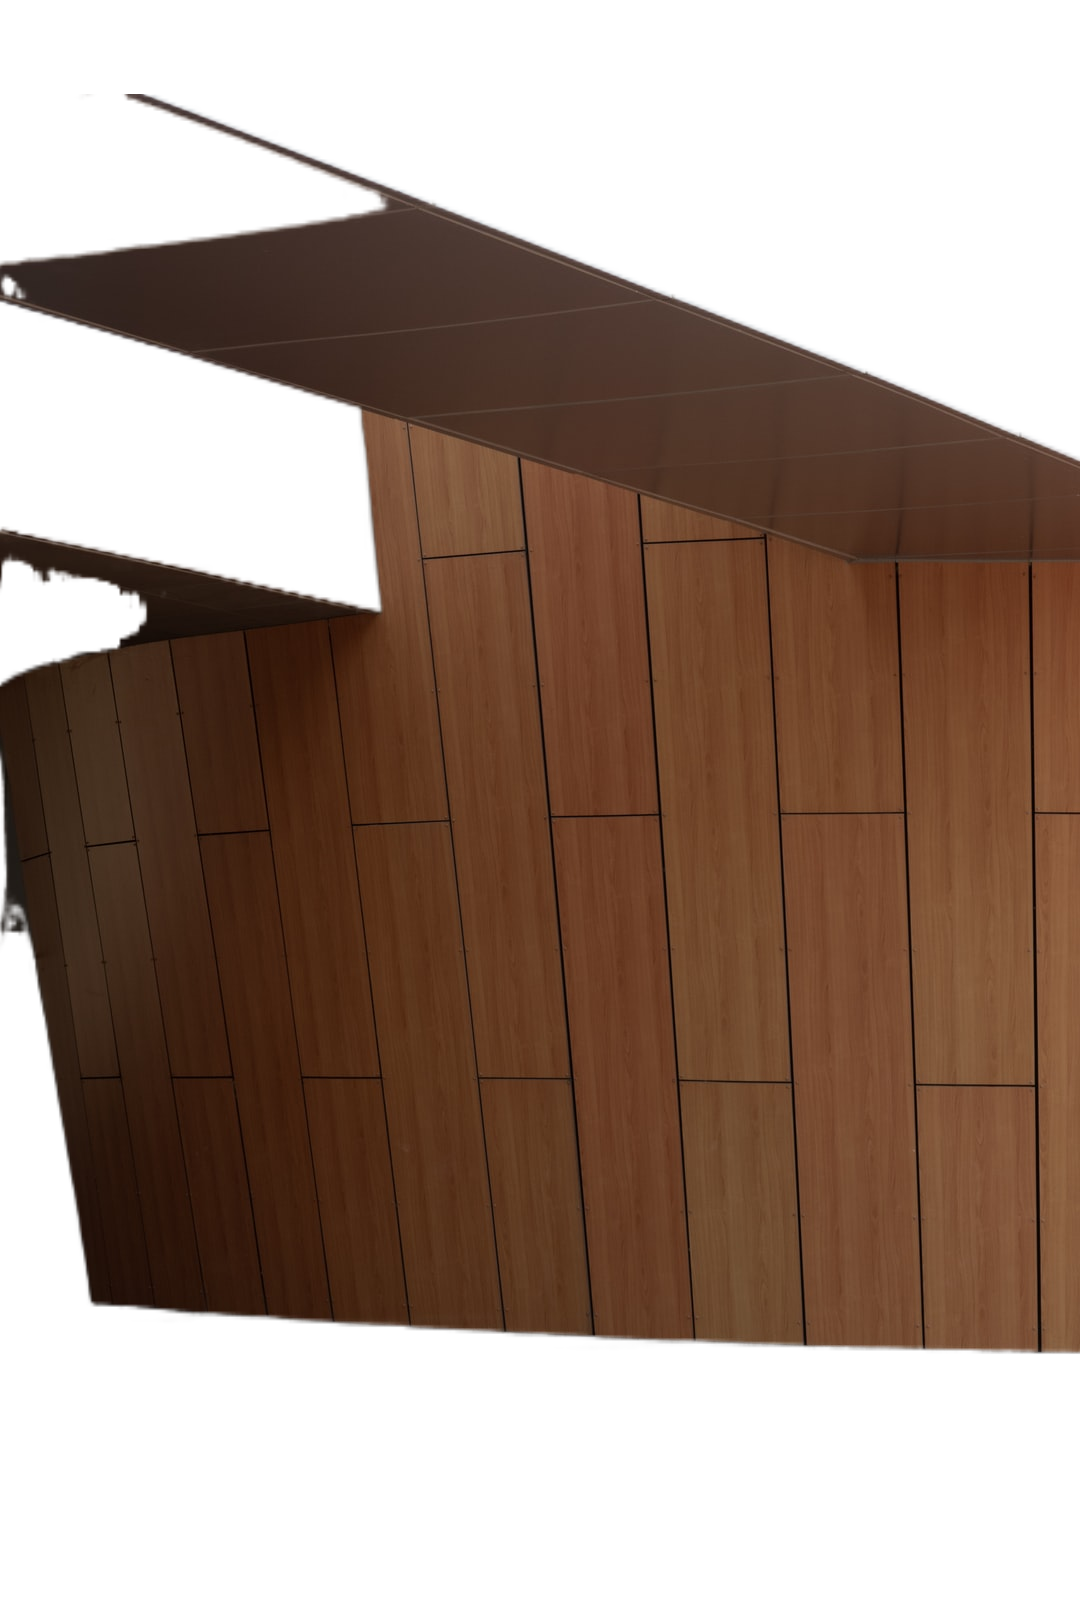 brown wooden wall with white ceiling